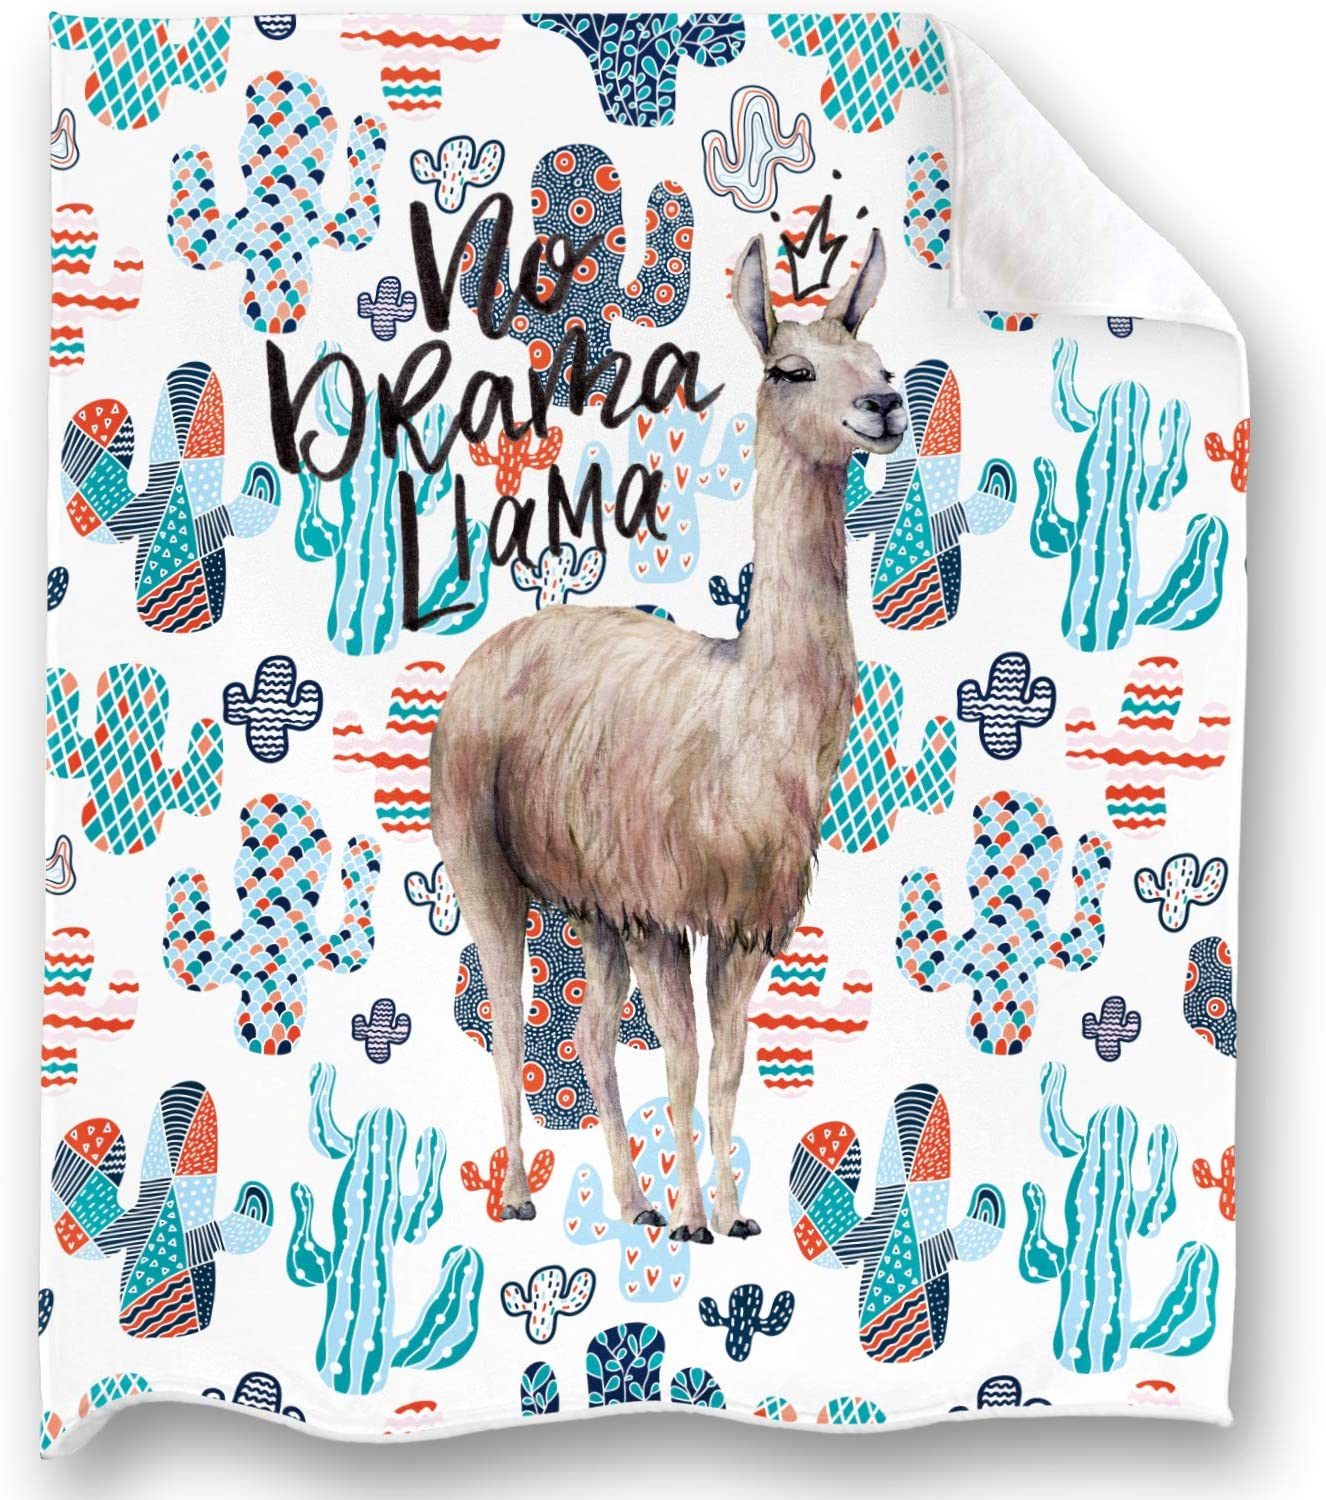 Loong Design Llama and Cactus Throw Blanket Super Soft, Fluffy, Premium Sherpa Fleece Blanket 50'' x 60'' Fit for Sofa Chair Bed Office Travelling Camping Gift